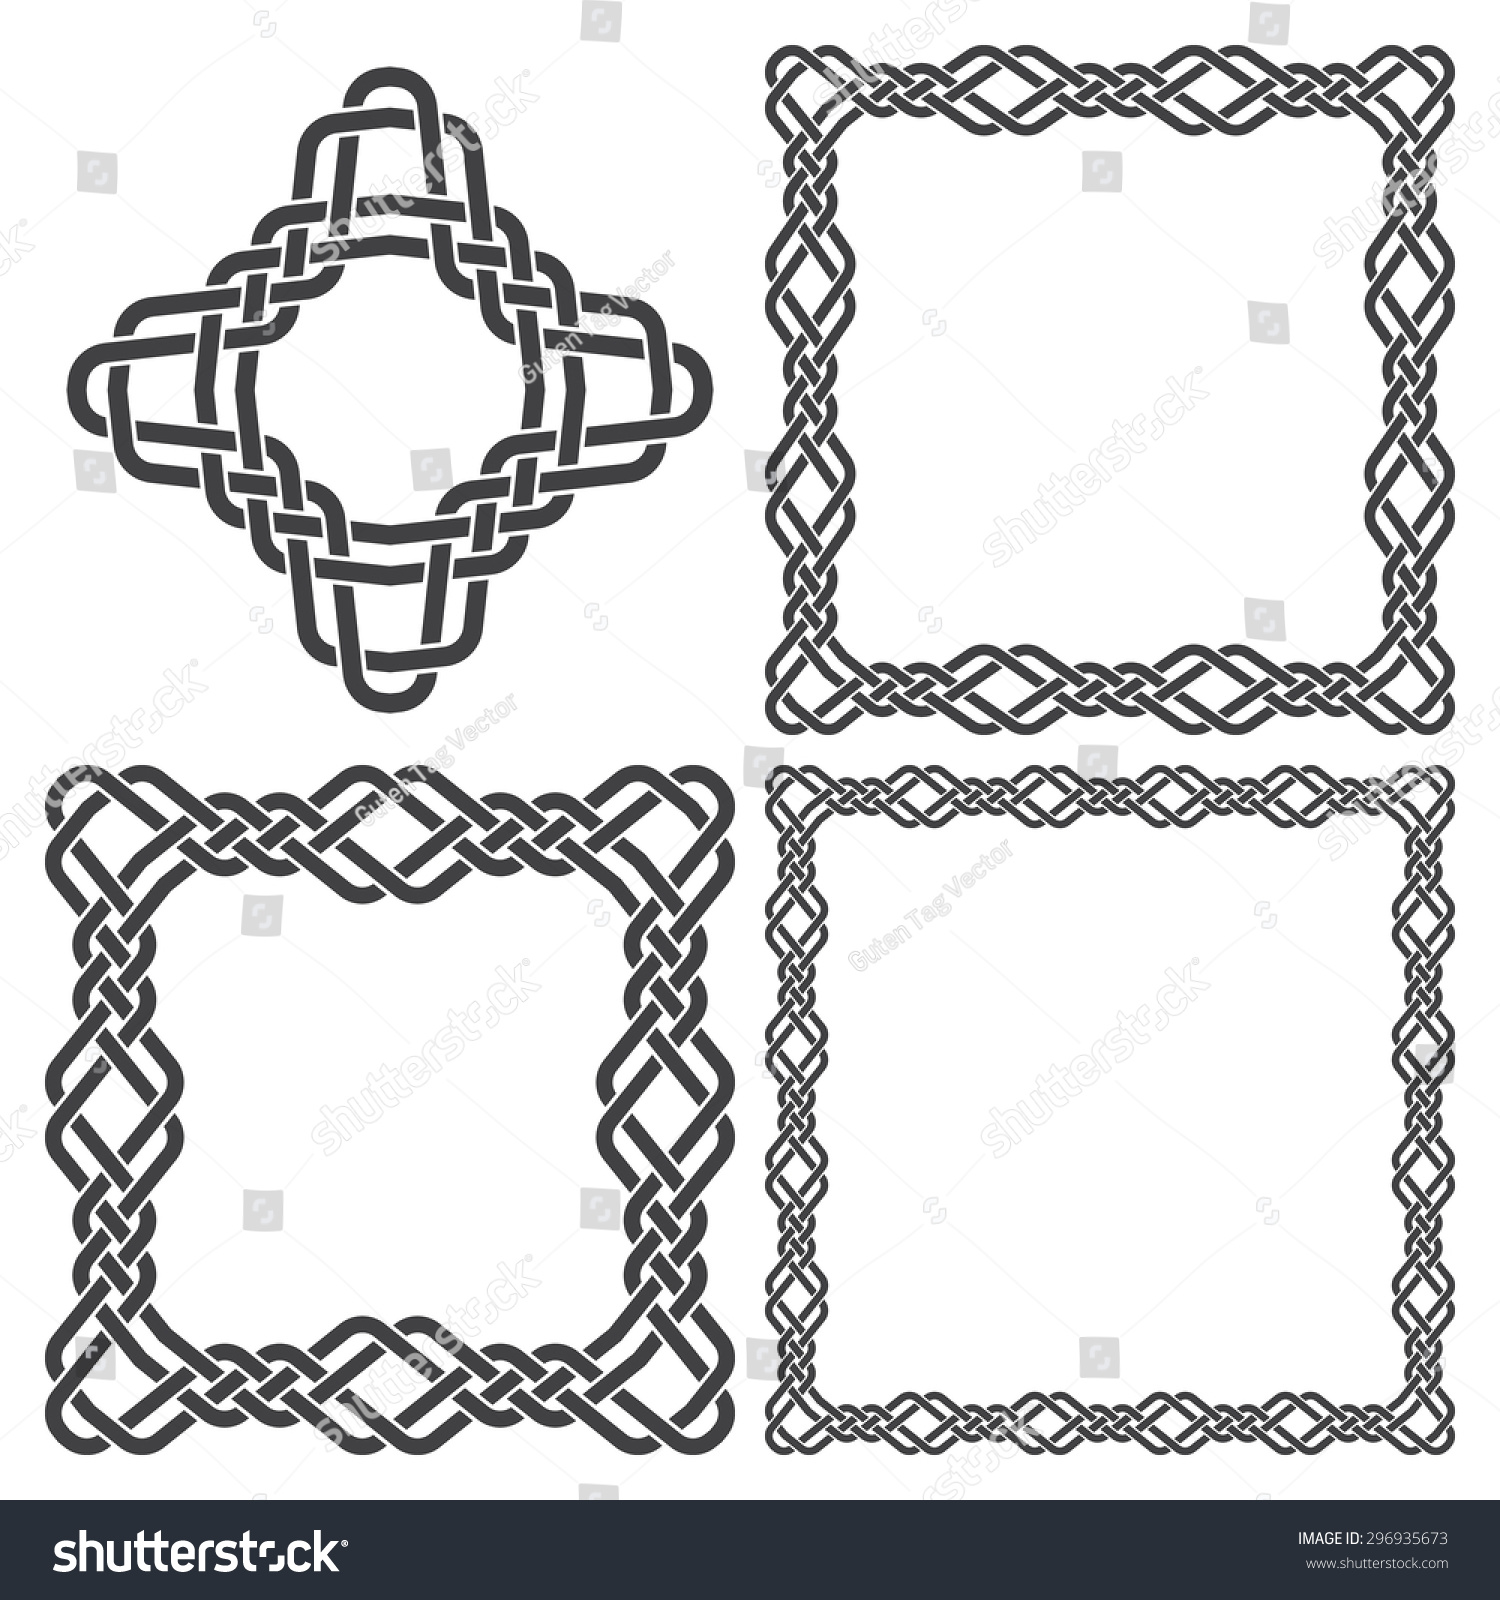 set of magic knotting frames and celtic cross 4 square decorative elements with stripes braiding